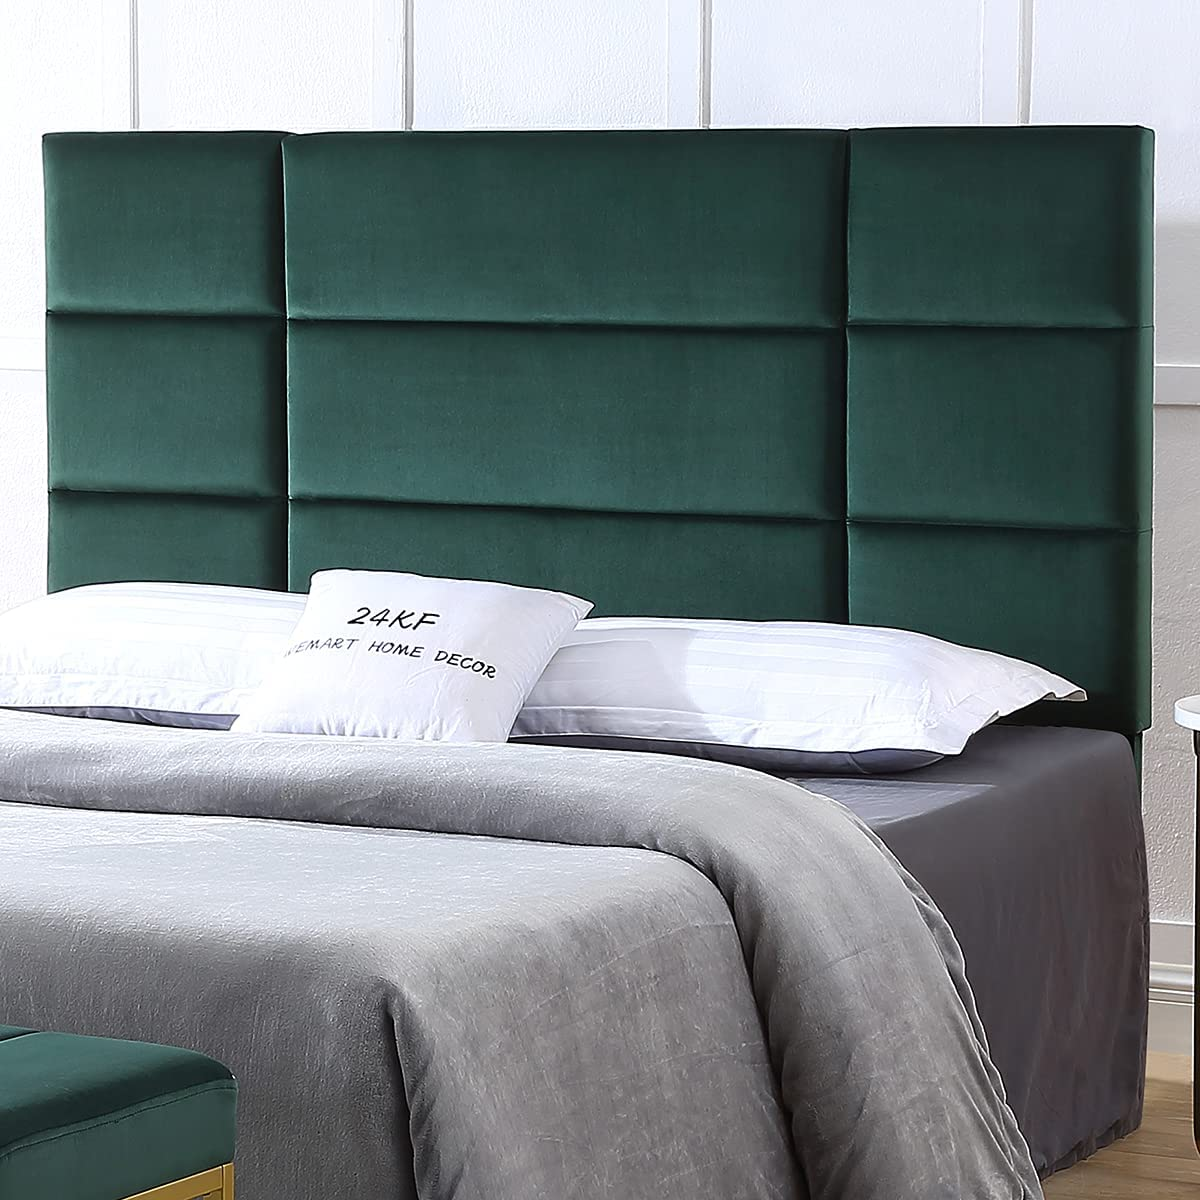 24KF Mid-Century Upholstered Tufted Comfortable King Headboard with Rectangle Pattern King/California King-Jade